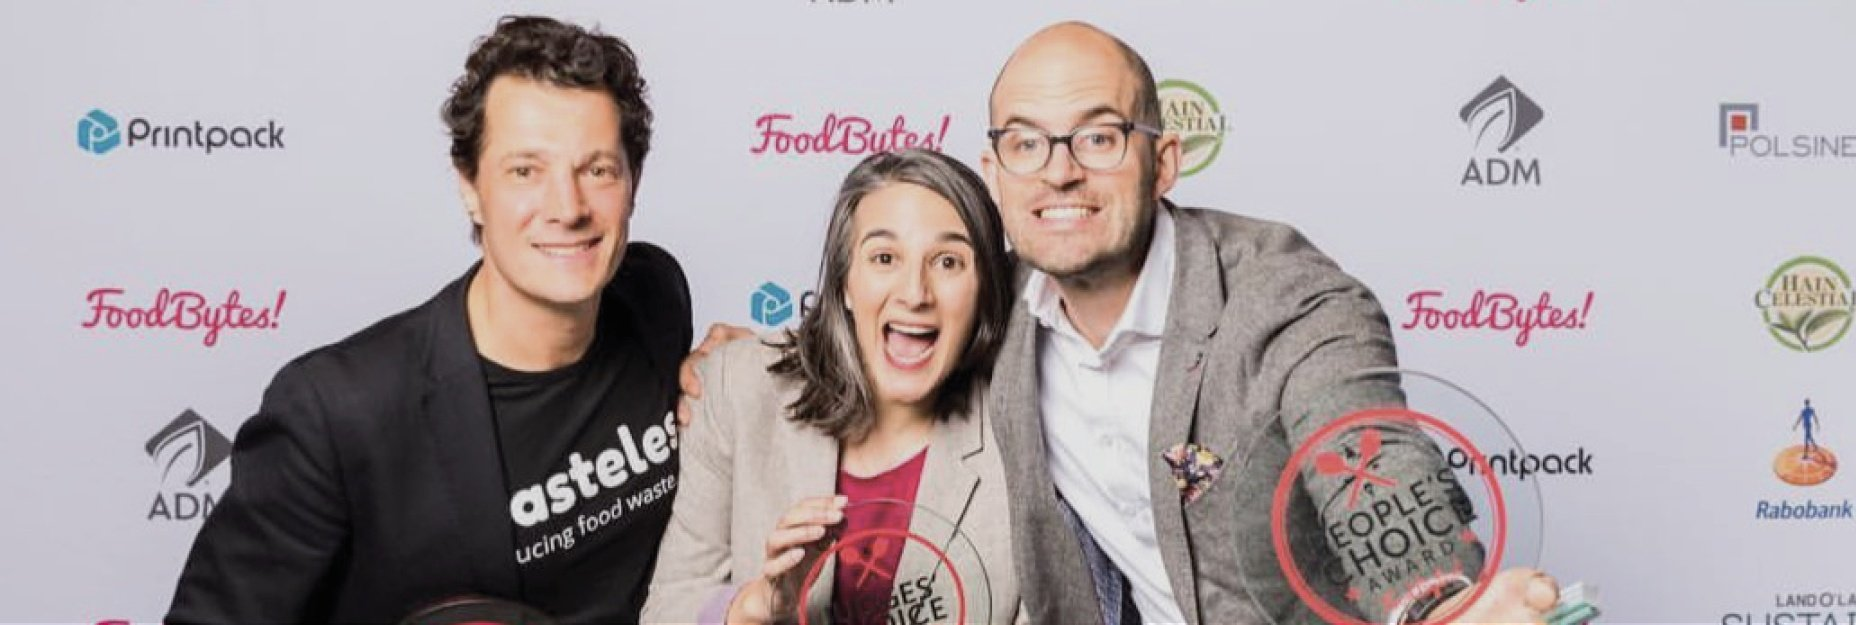 Winnow Wins People's Choice Award at Foodbytes NYC